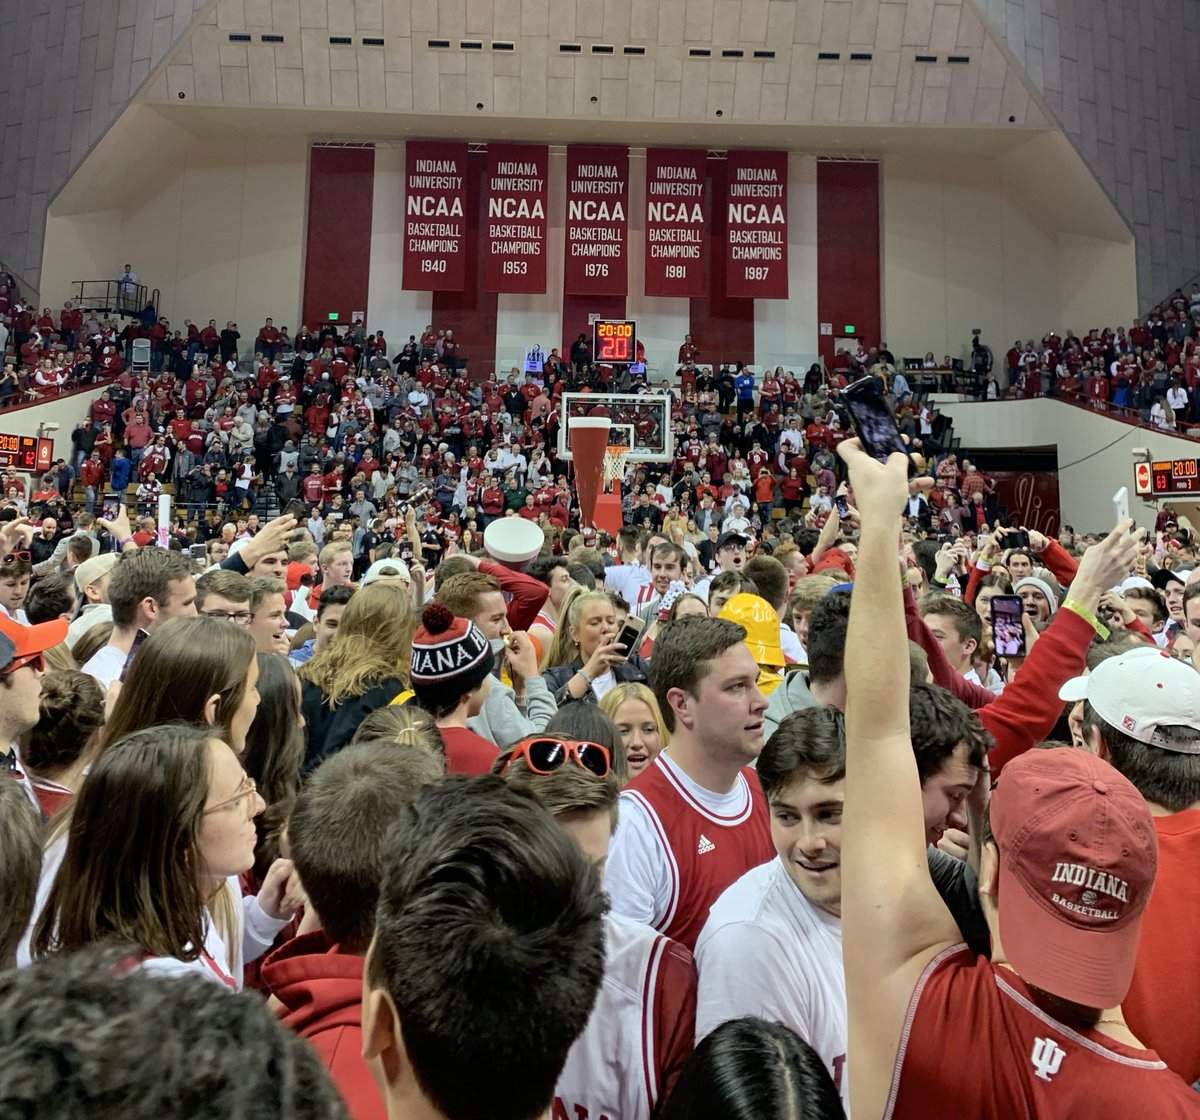 Last home game as a student:  - Comeback win against #6 Michigan state - Tournament back in the picture - Stormed the court